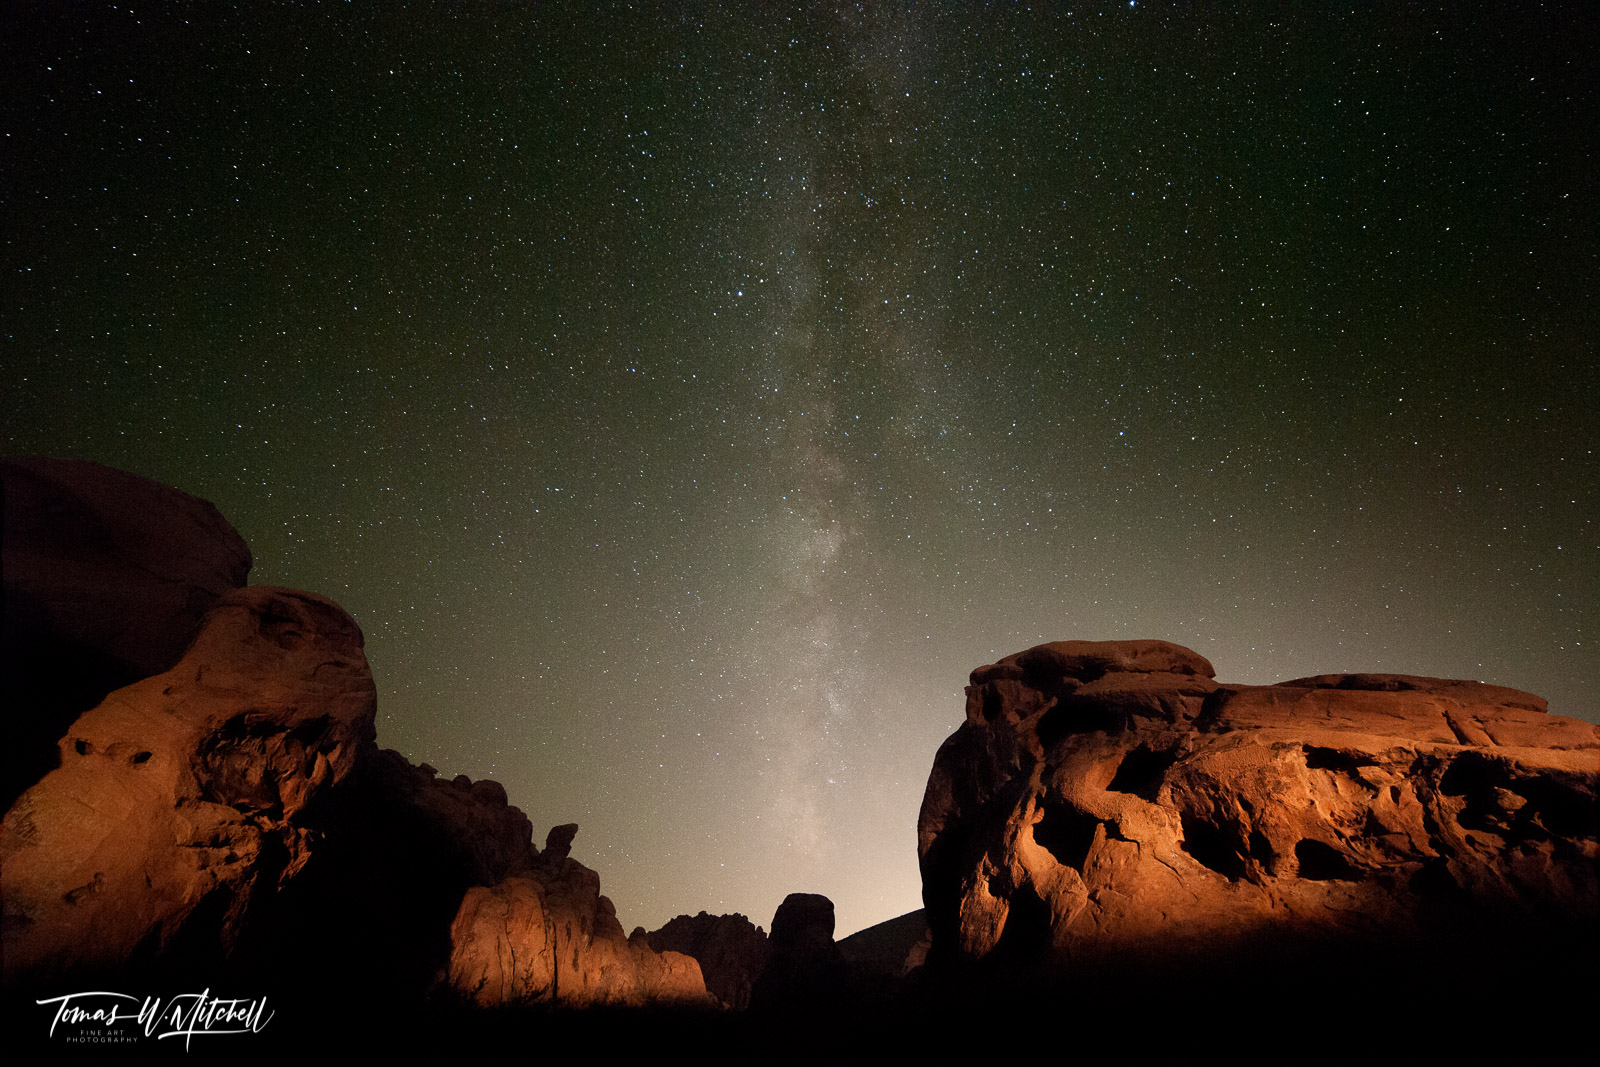 limited edition, fine art, prints, valley of fire, Nevada, photographing, sky, photographs, night sky, arch rock, glow, las vegas, milky way, rocks, red rocks, photo